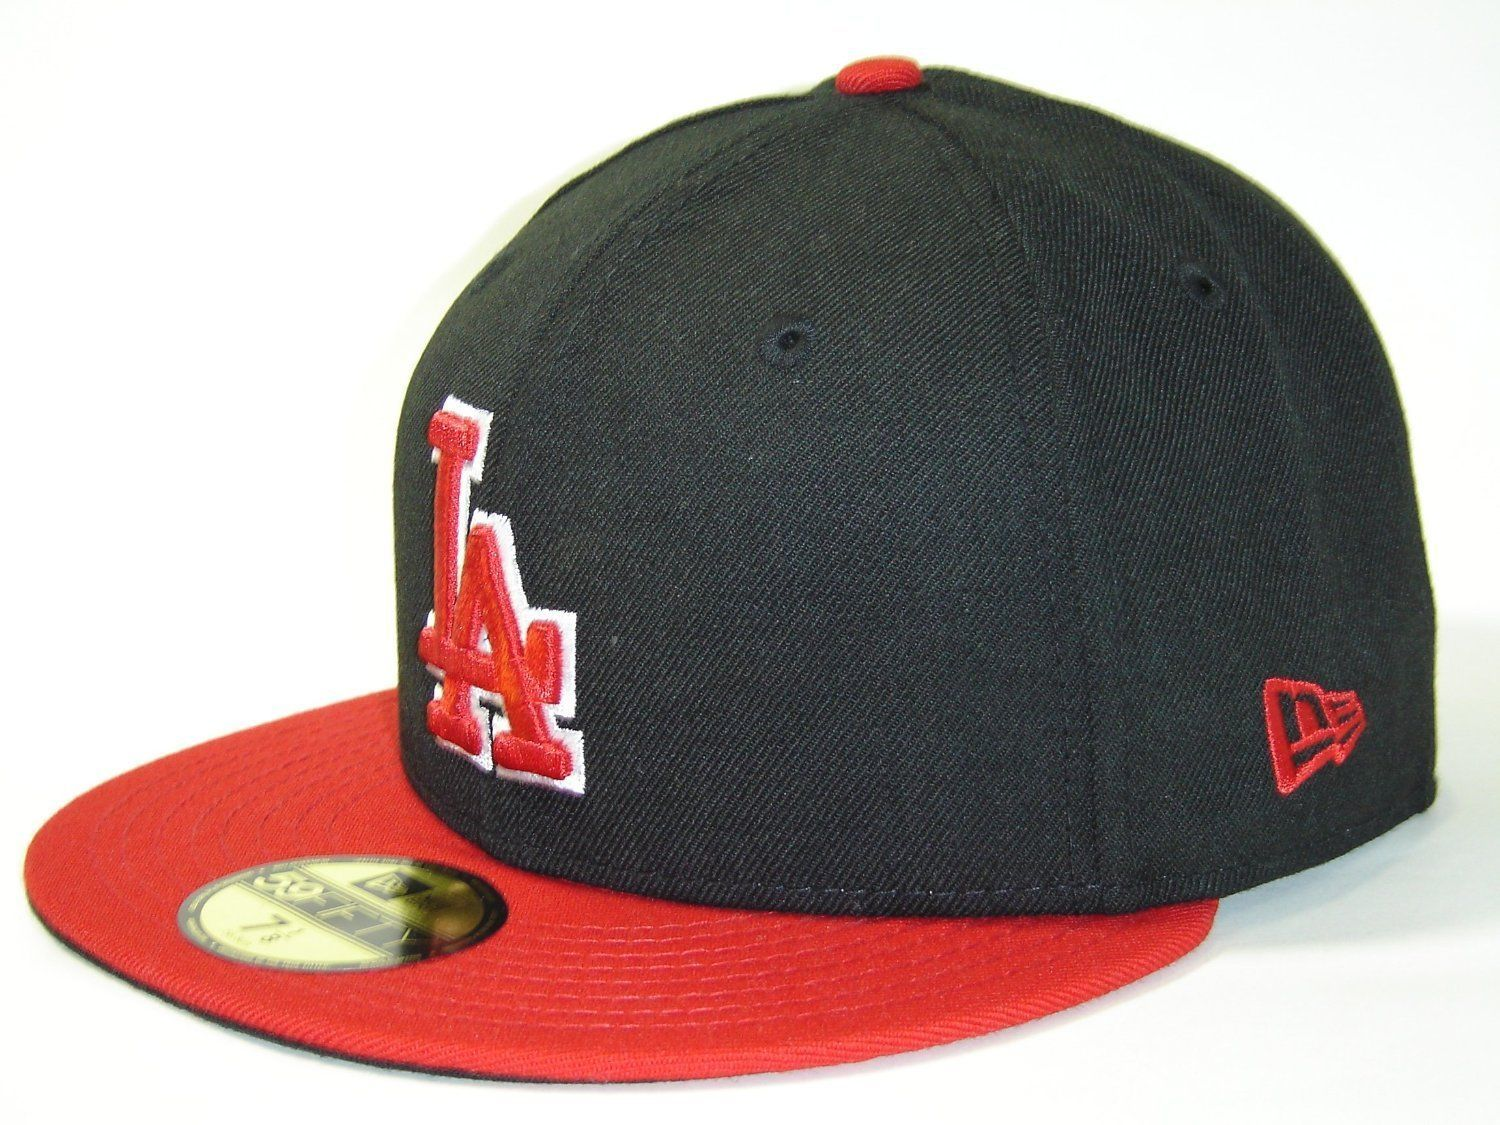 New Era 59Fifty MLB Los Angeles Dodgers Black/Scarlet Fitted Cap